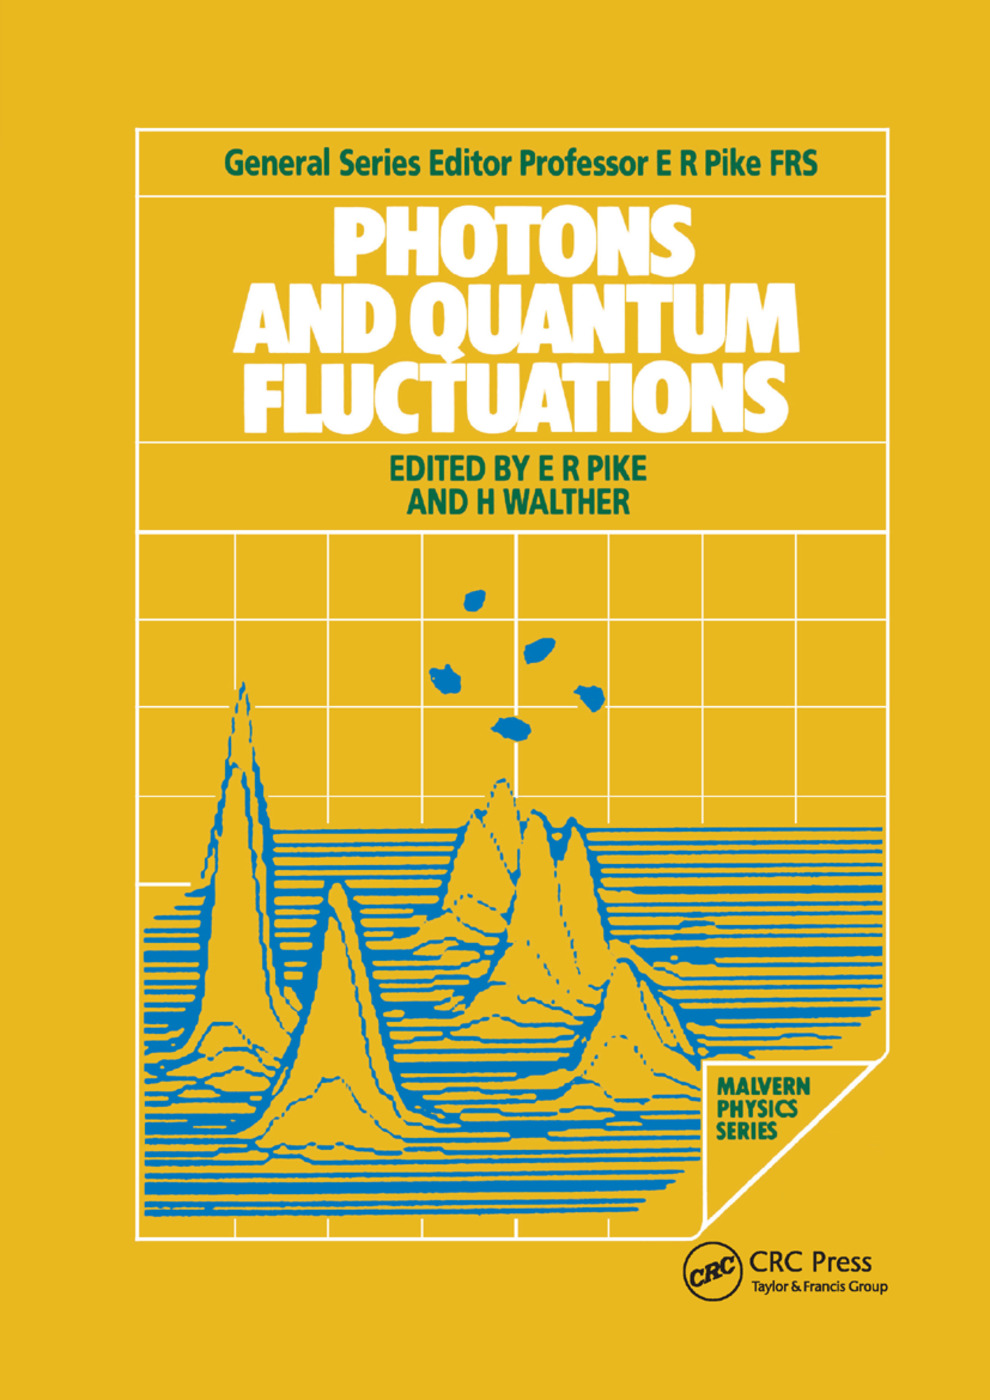 Photons and Quantum Fluctuations